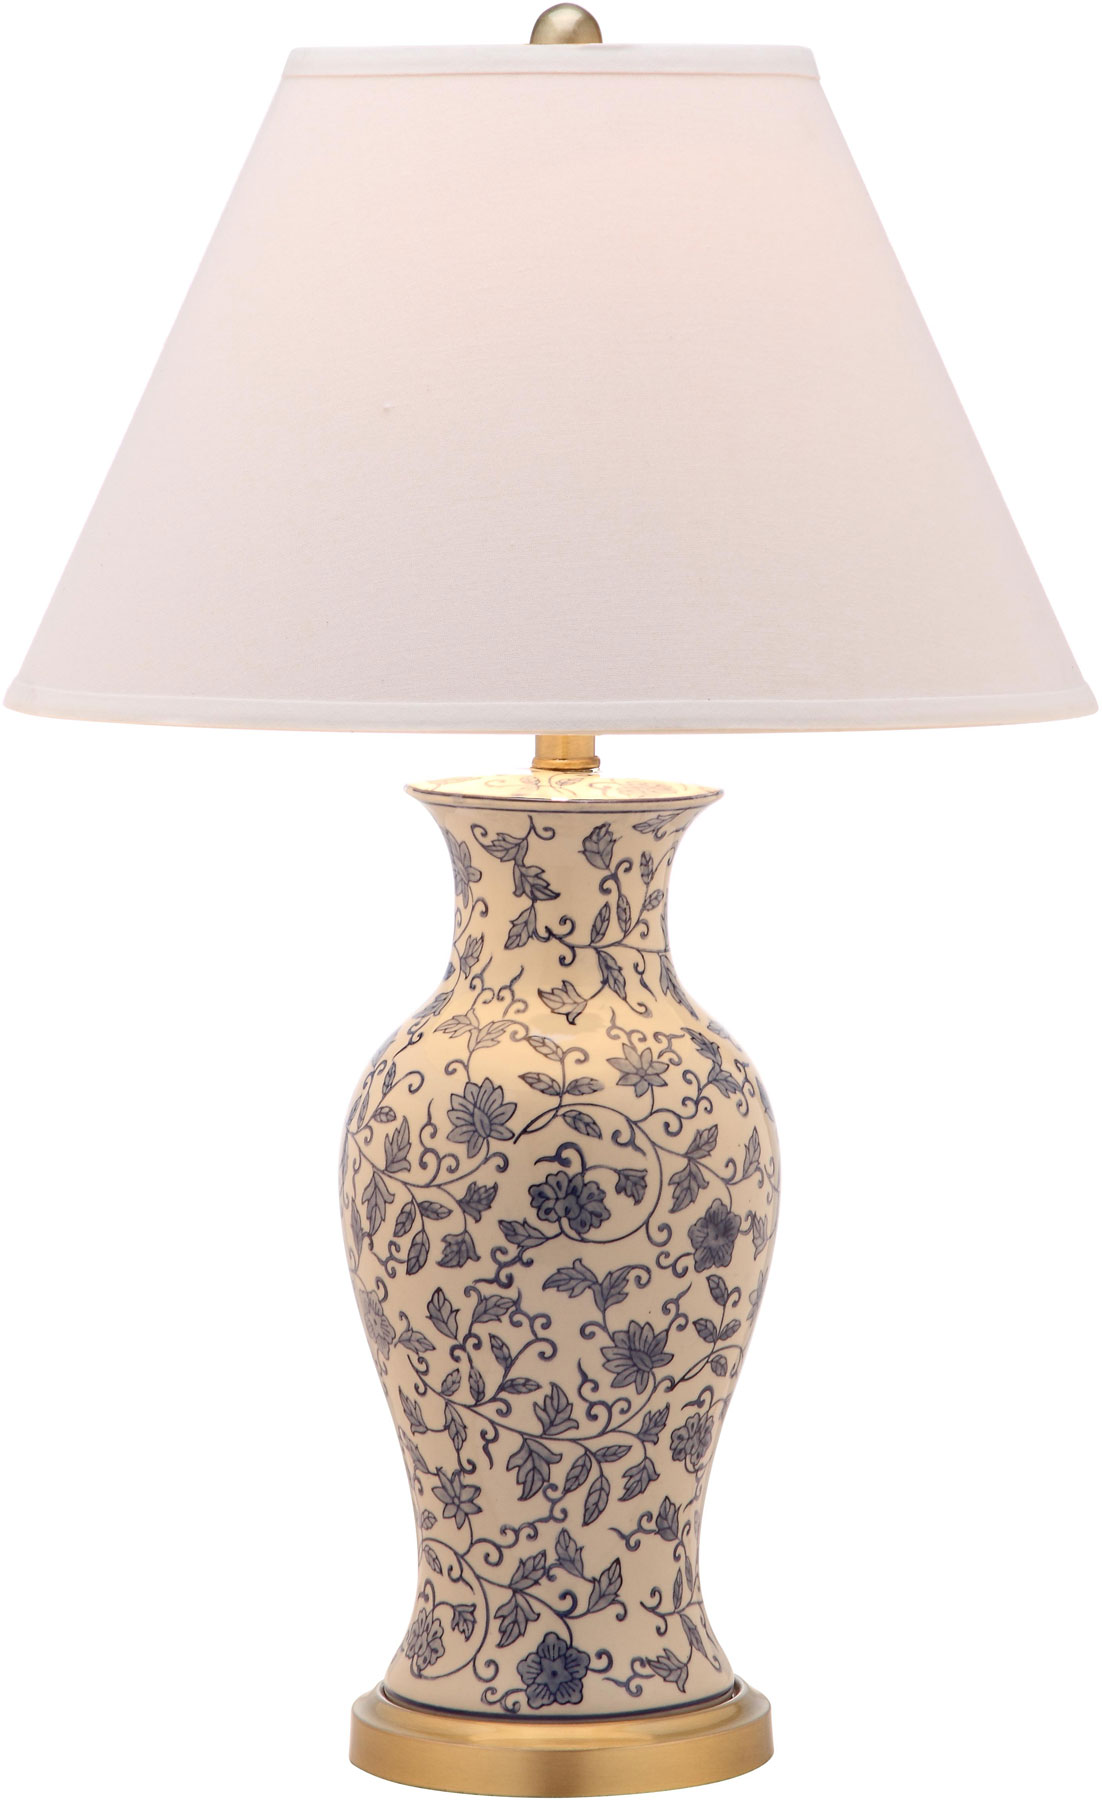 Lit4172a Set2 Table Lamps Lighting By Safavieh